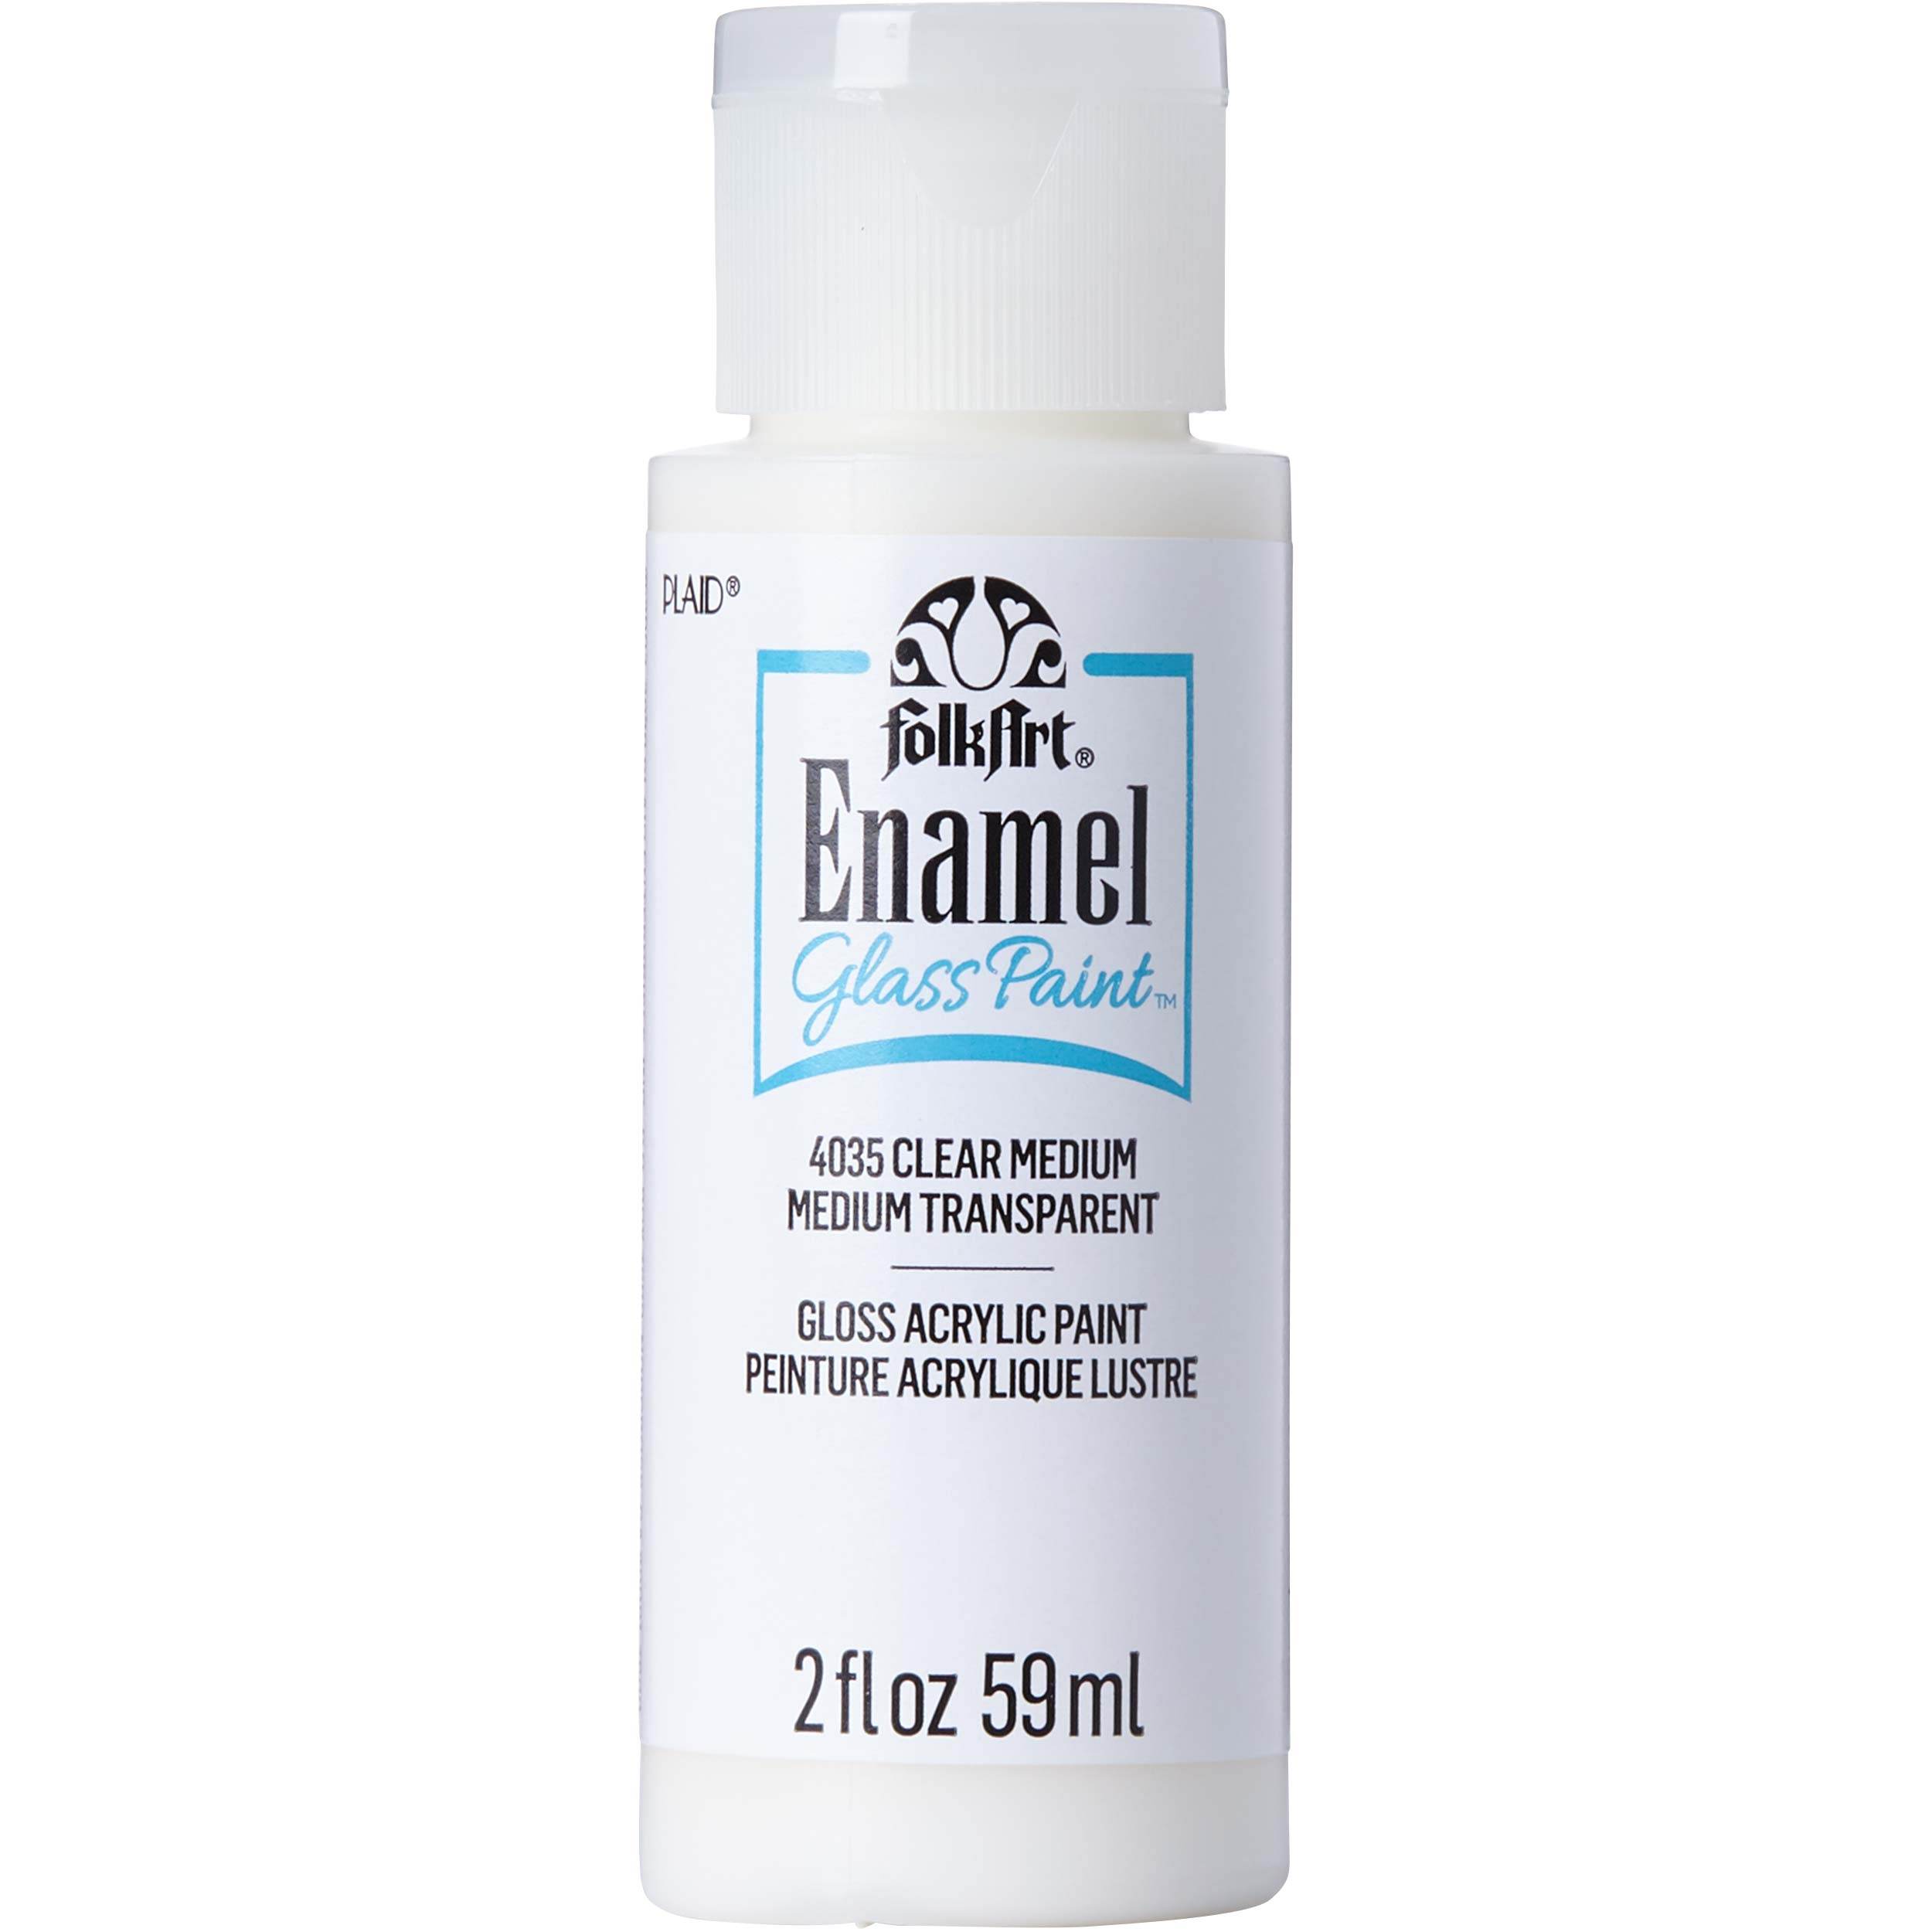 FolkArt ® Enamels™ Mediums - Clear Medium, 2 oz. - 4035